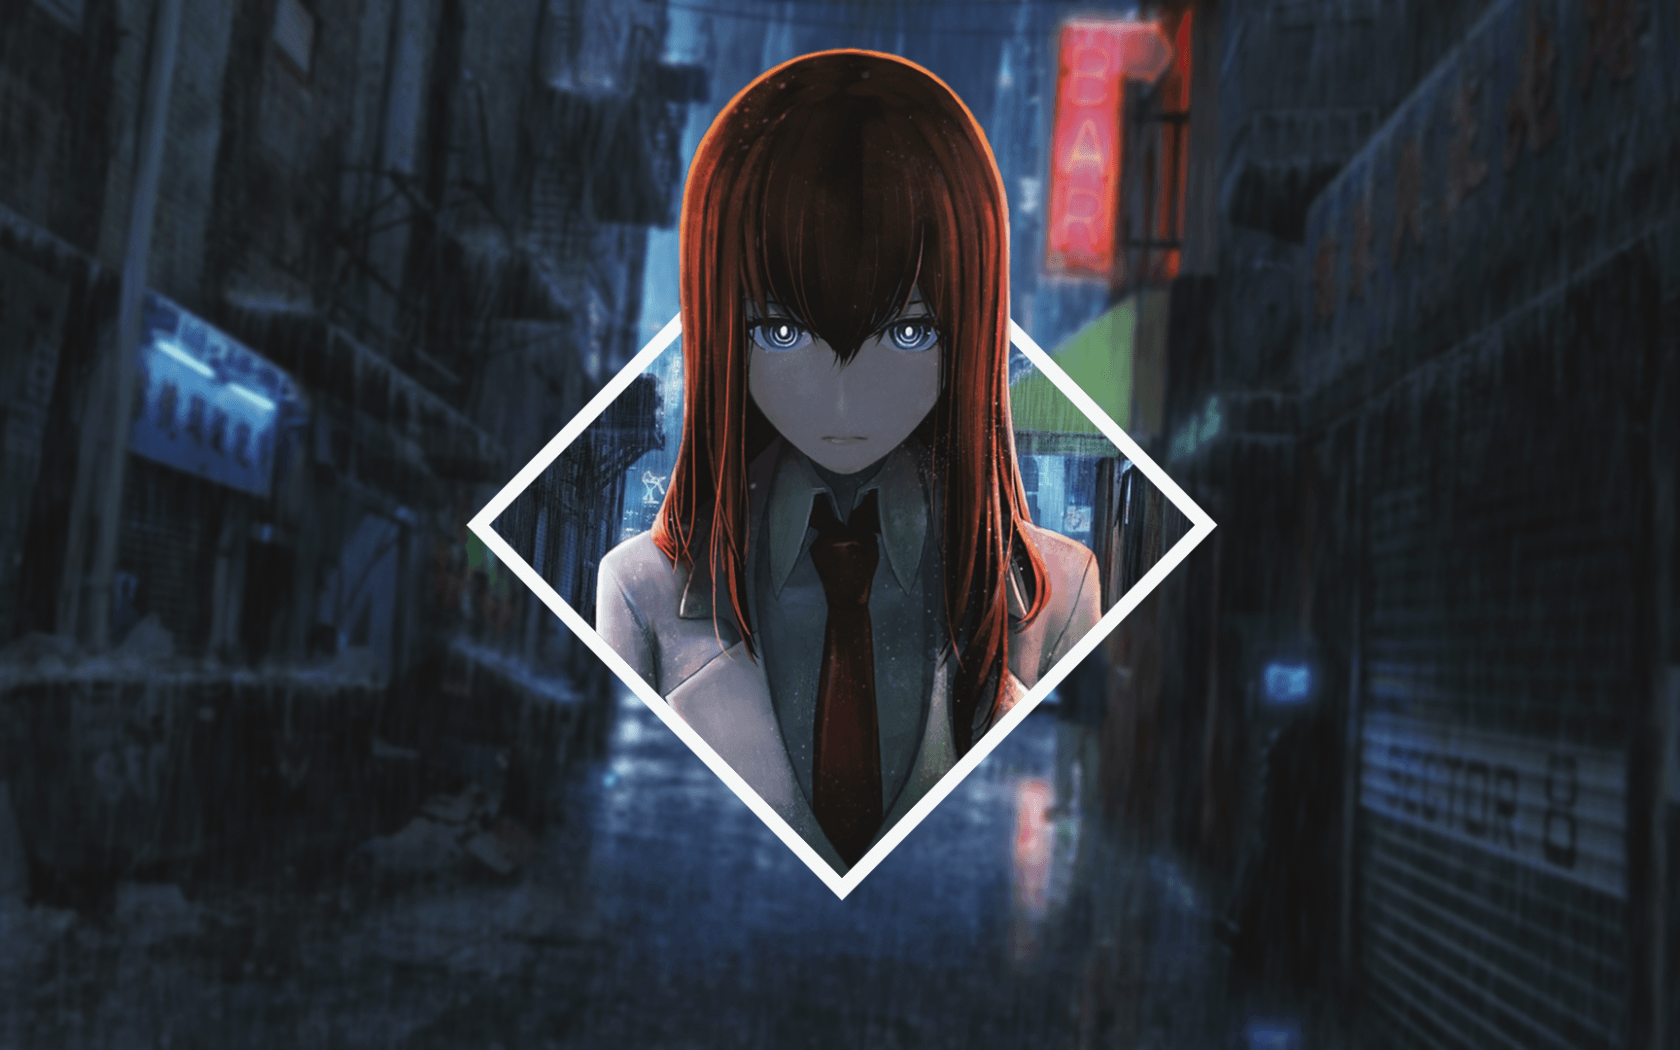 Download 1680x1050 Makise Kurisu, Steins Gate, Raining, Streets